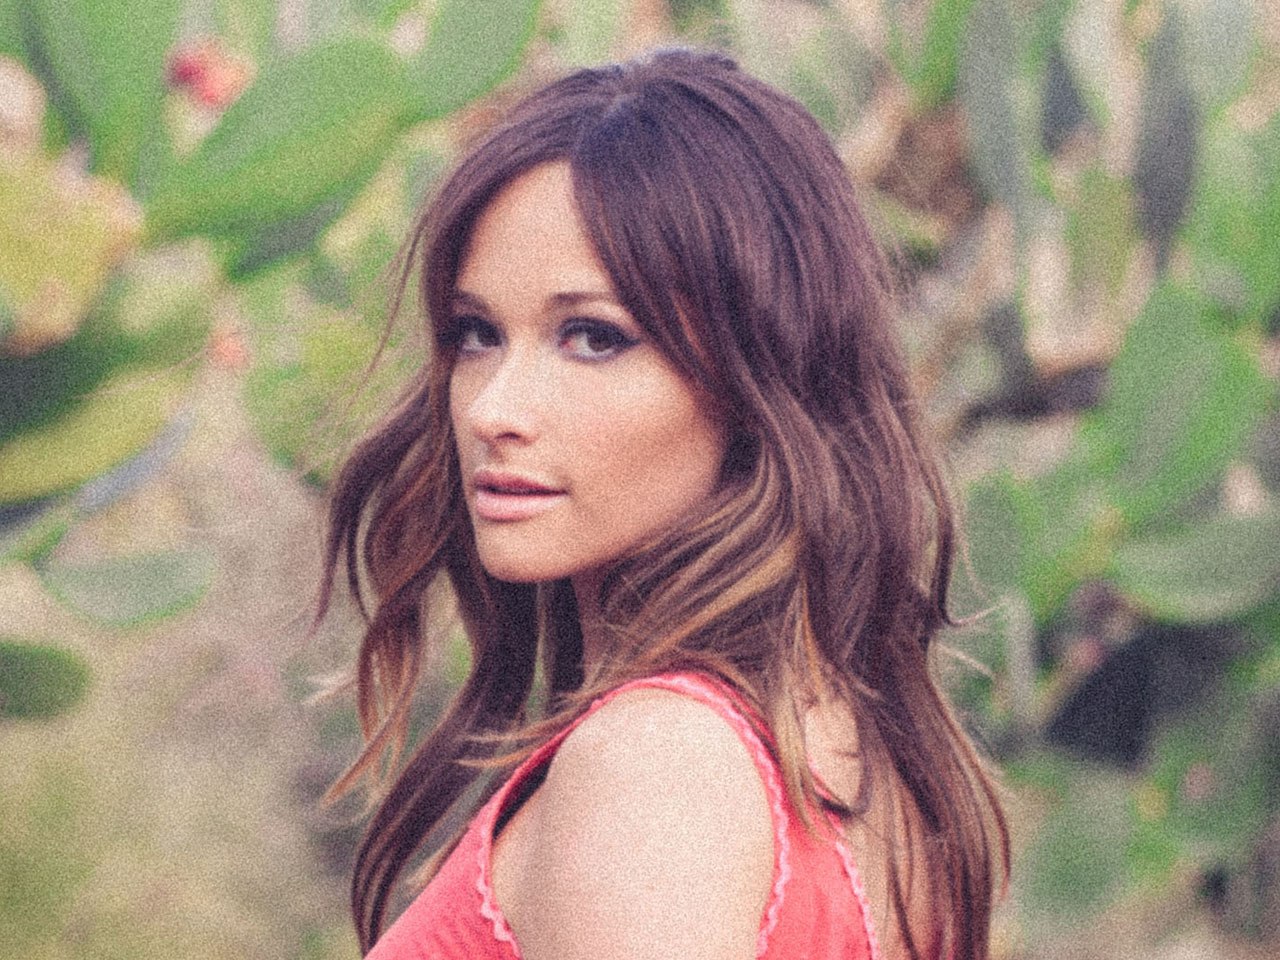 kacey musgraves - photo #16